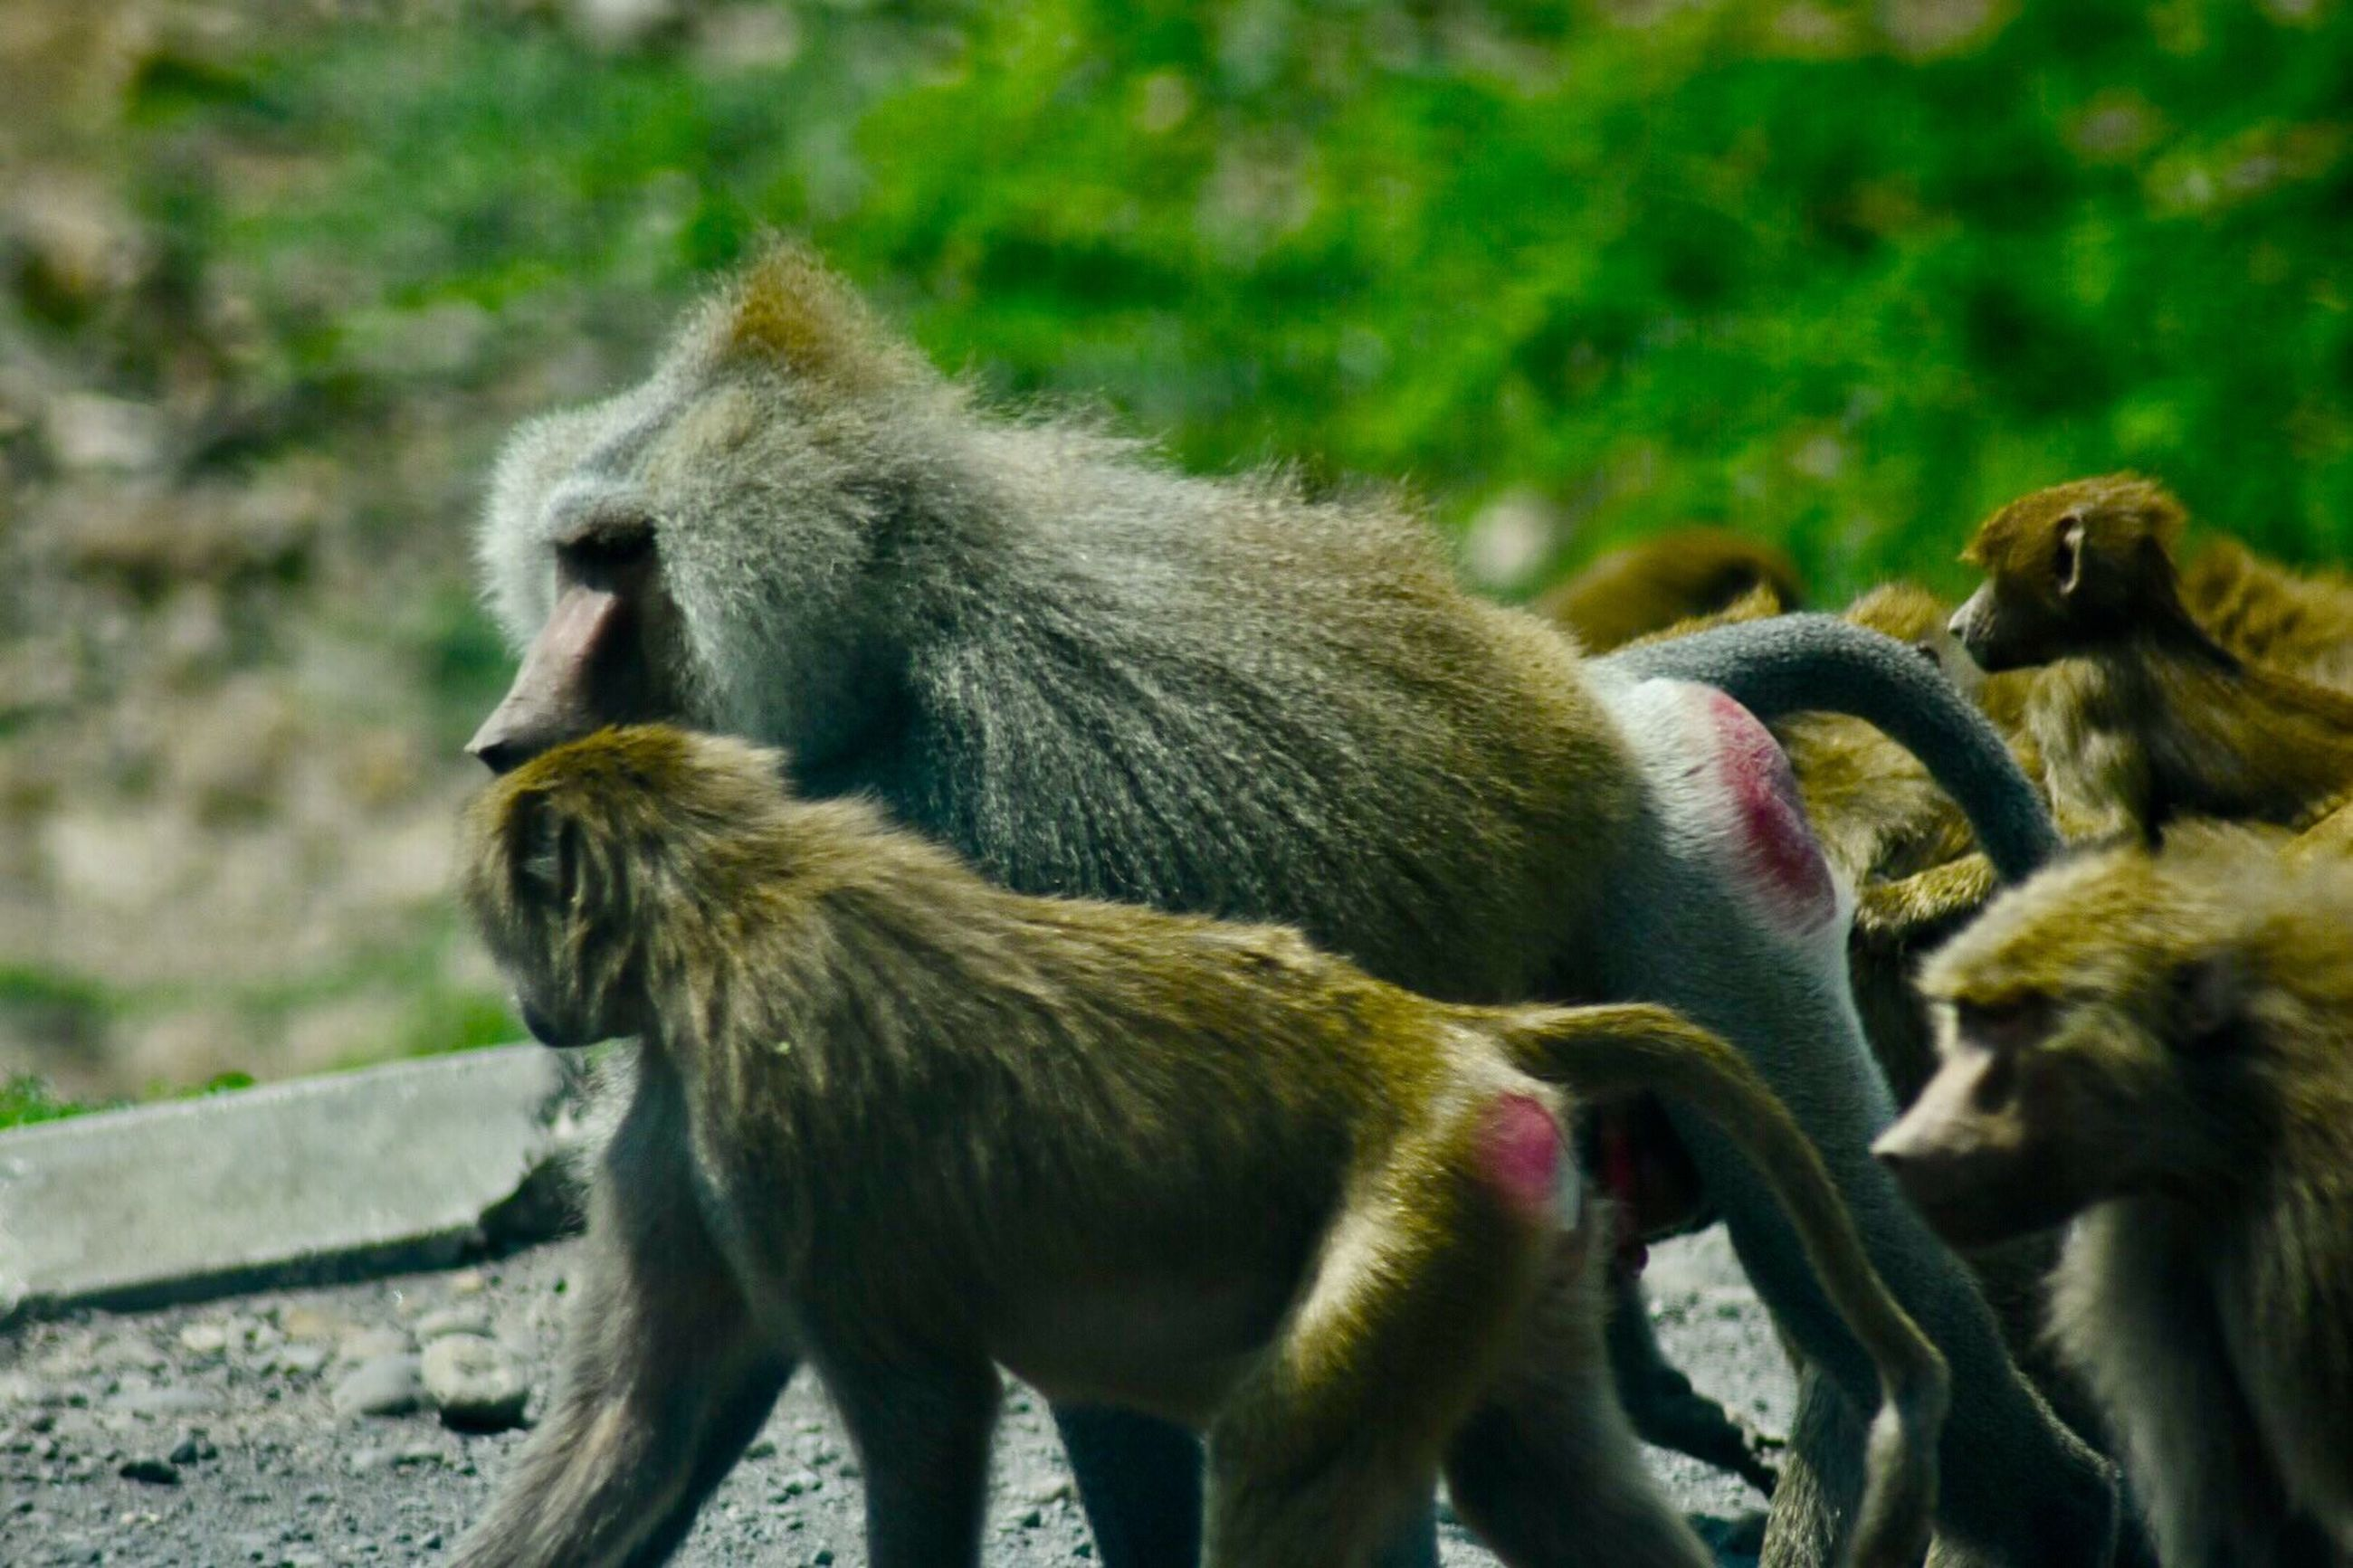 animals in the wild, animal wildlife, two animals, animal themes, animal, animal family, monkey, day, young animal, mammal, no people, outdoors, baboon, sitting, nature, togetherness, full length, close-up